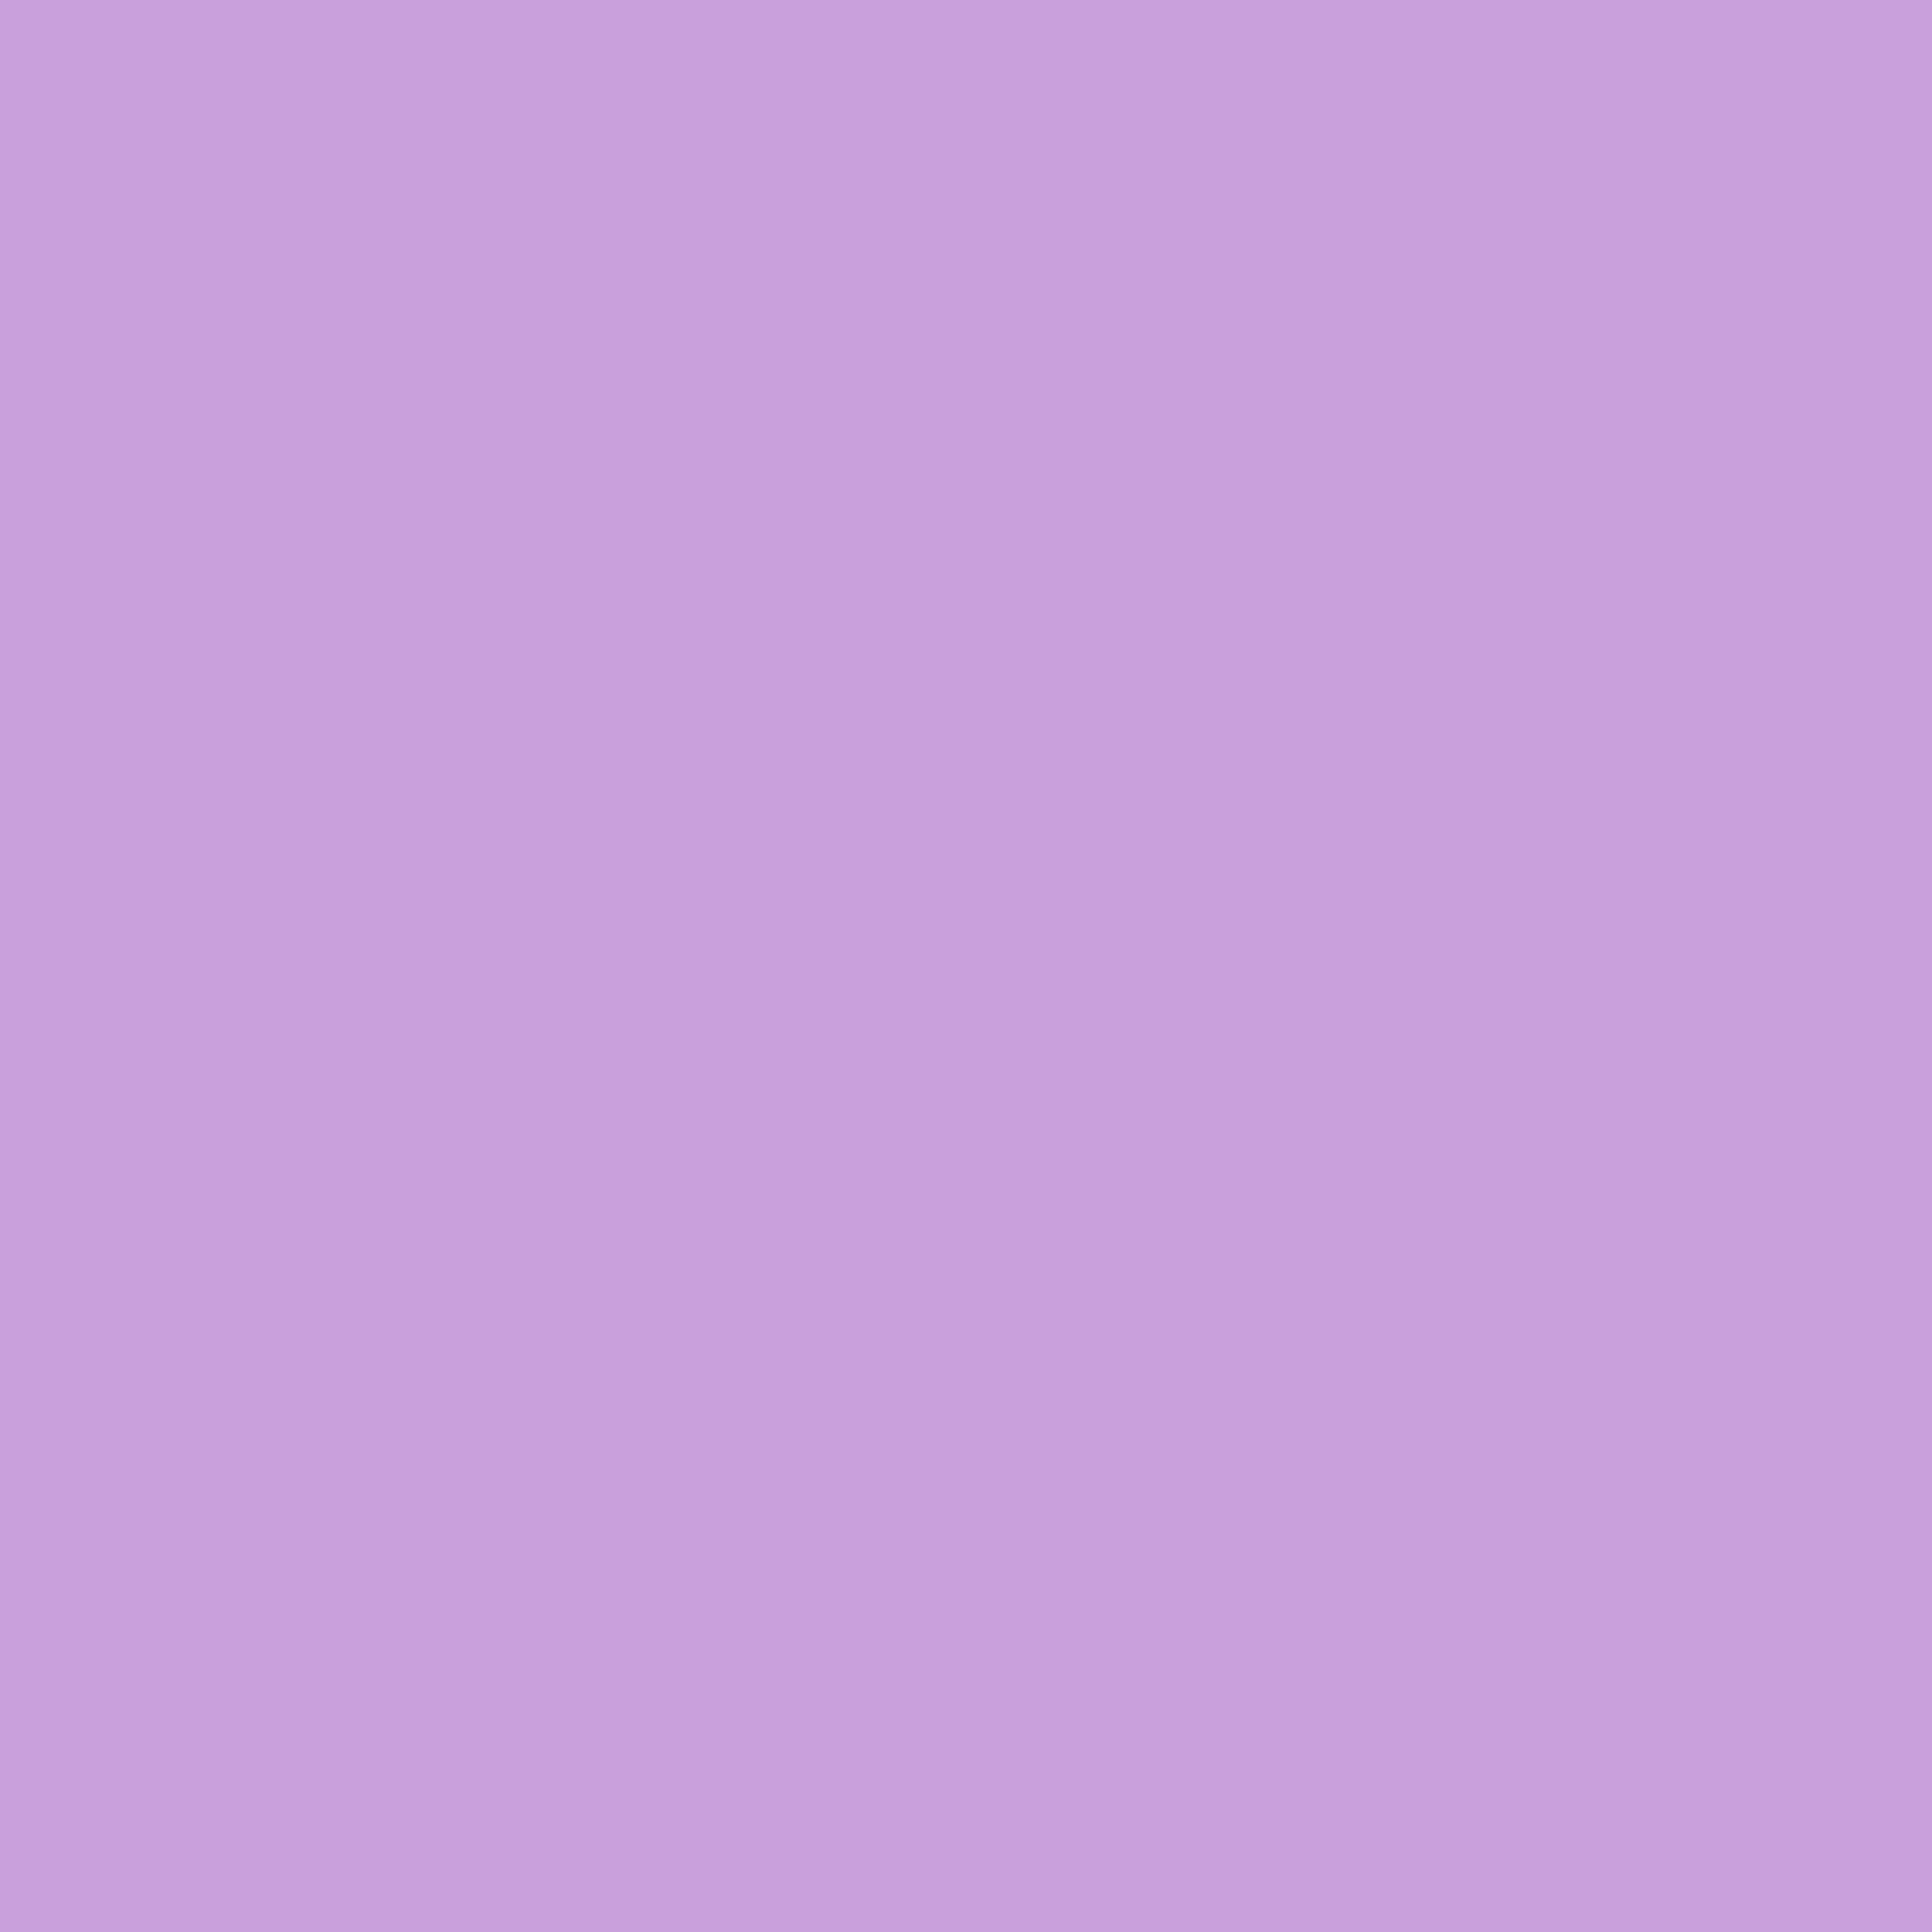 2048x2048 Wisteria Solid Color Background